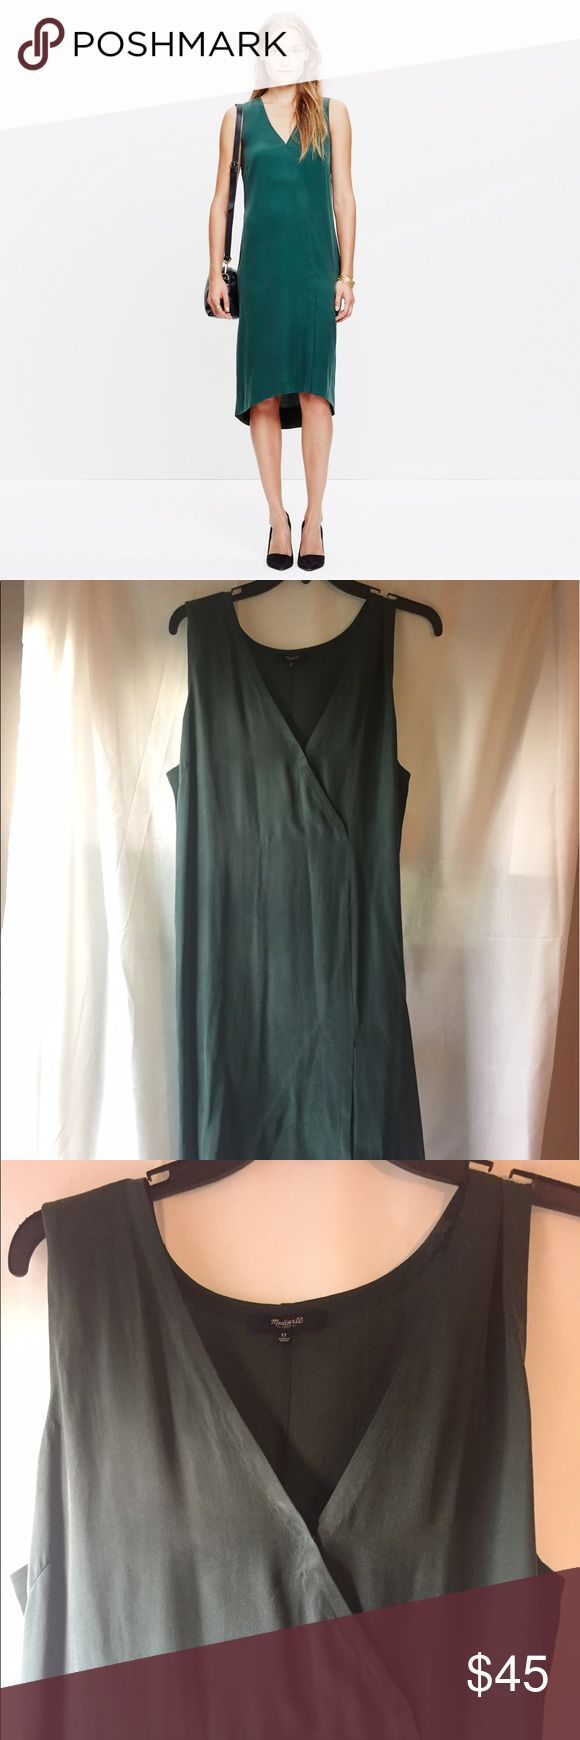 Forest green silk wrap style dress - Madewell 12 Gorgeous forest green silk dress from Madewell. Size 12. This is a smooth silk front, with a textured light crepe silk back panel. Hits at the knee and is a bit lower in the back (very slight high-low style). The front crosses at the bust and has a little snap to keep it a bit more modest. The front skirt has a faux wrap effect too. The color is a gorgeous forest green - not as blue-green as in the stock photo, much more mild green (see 2nd…